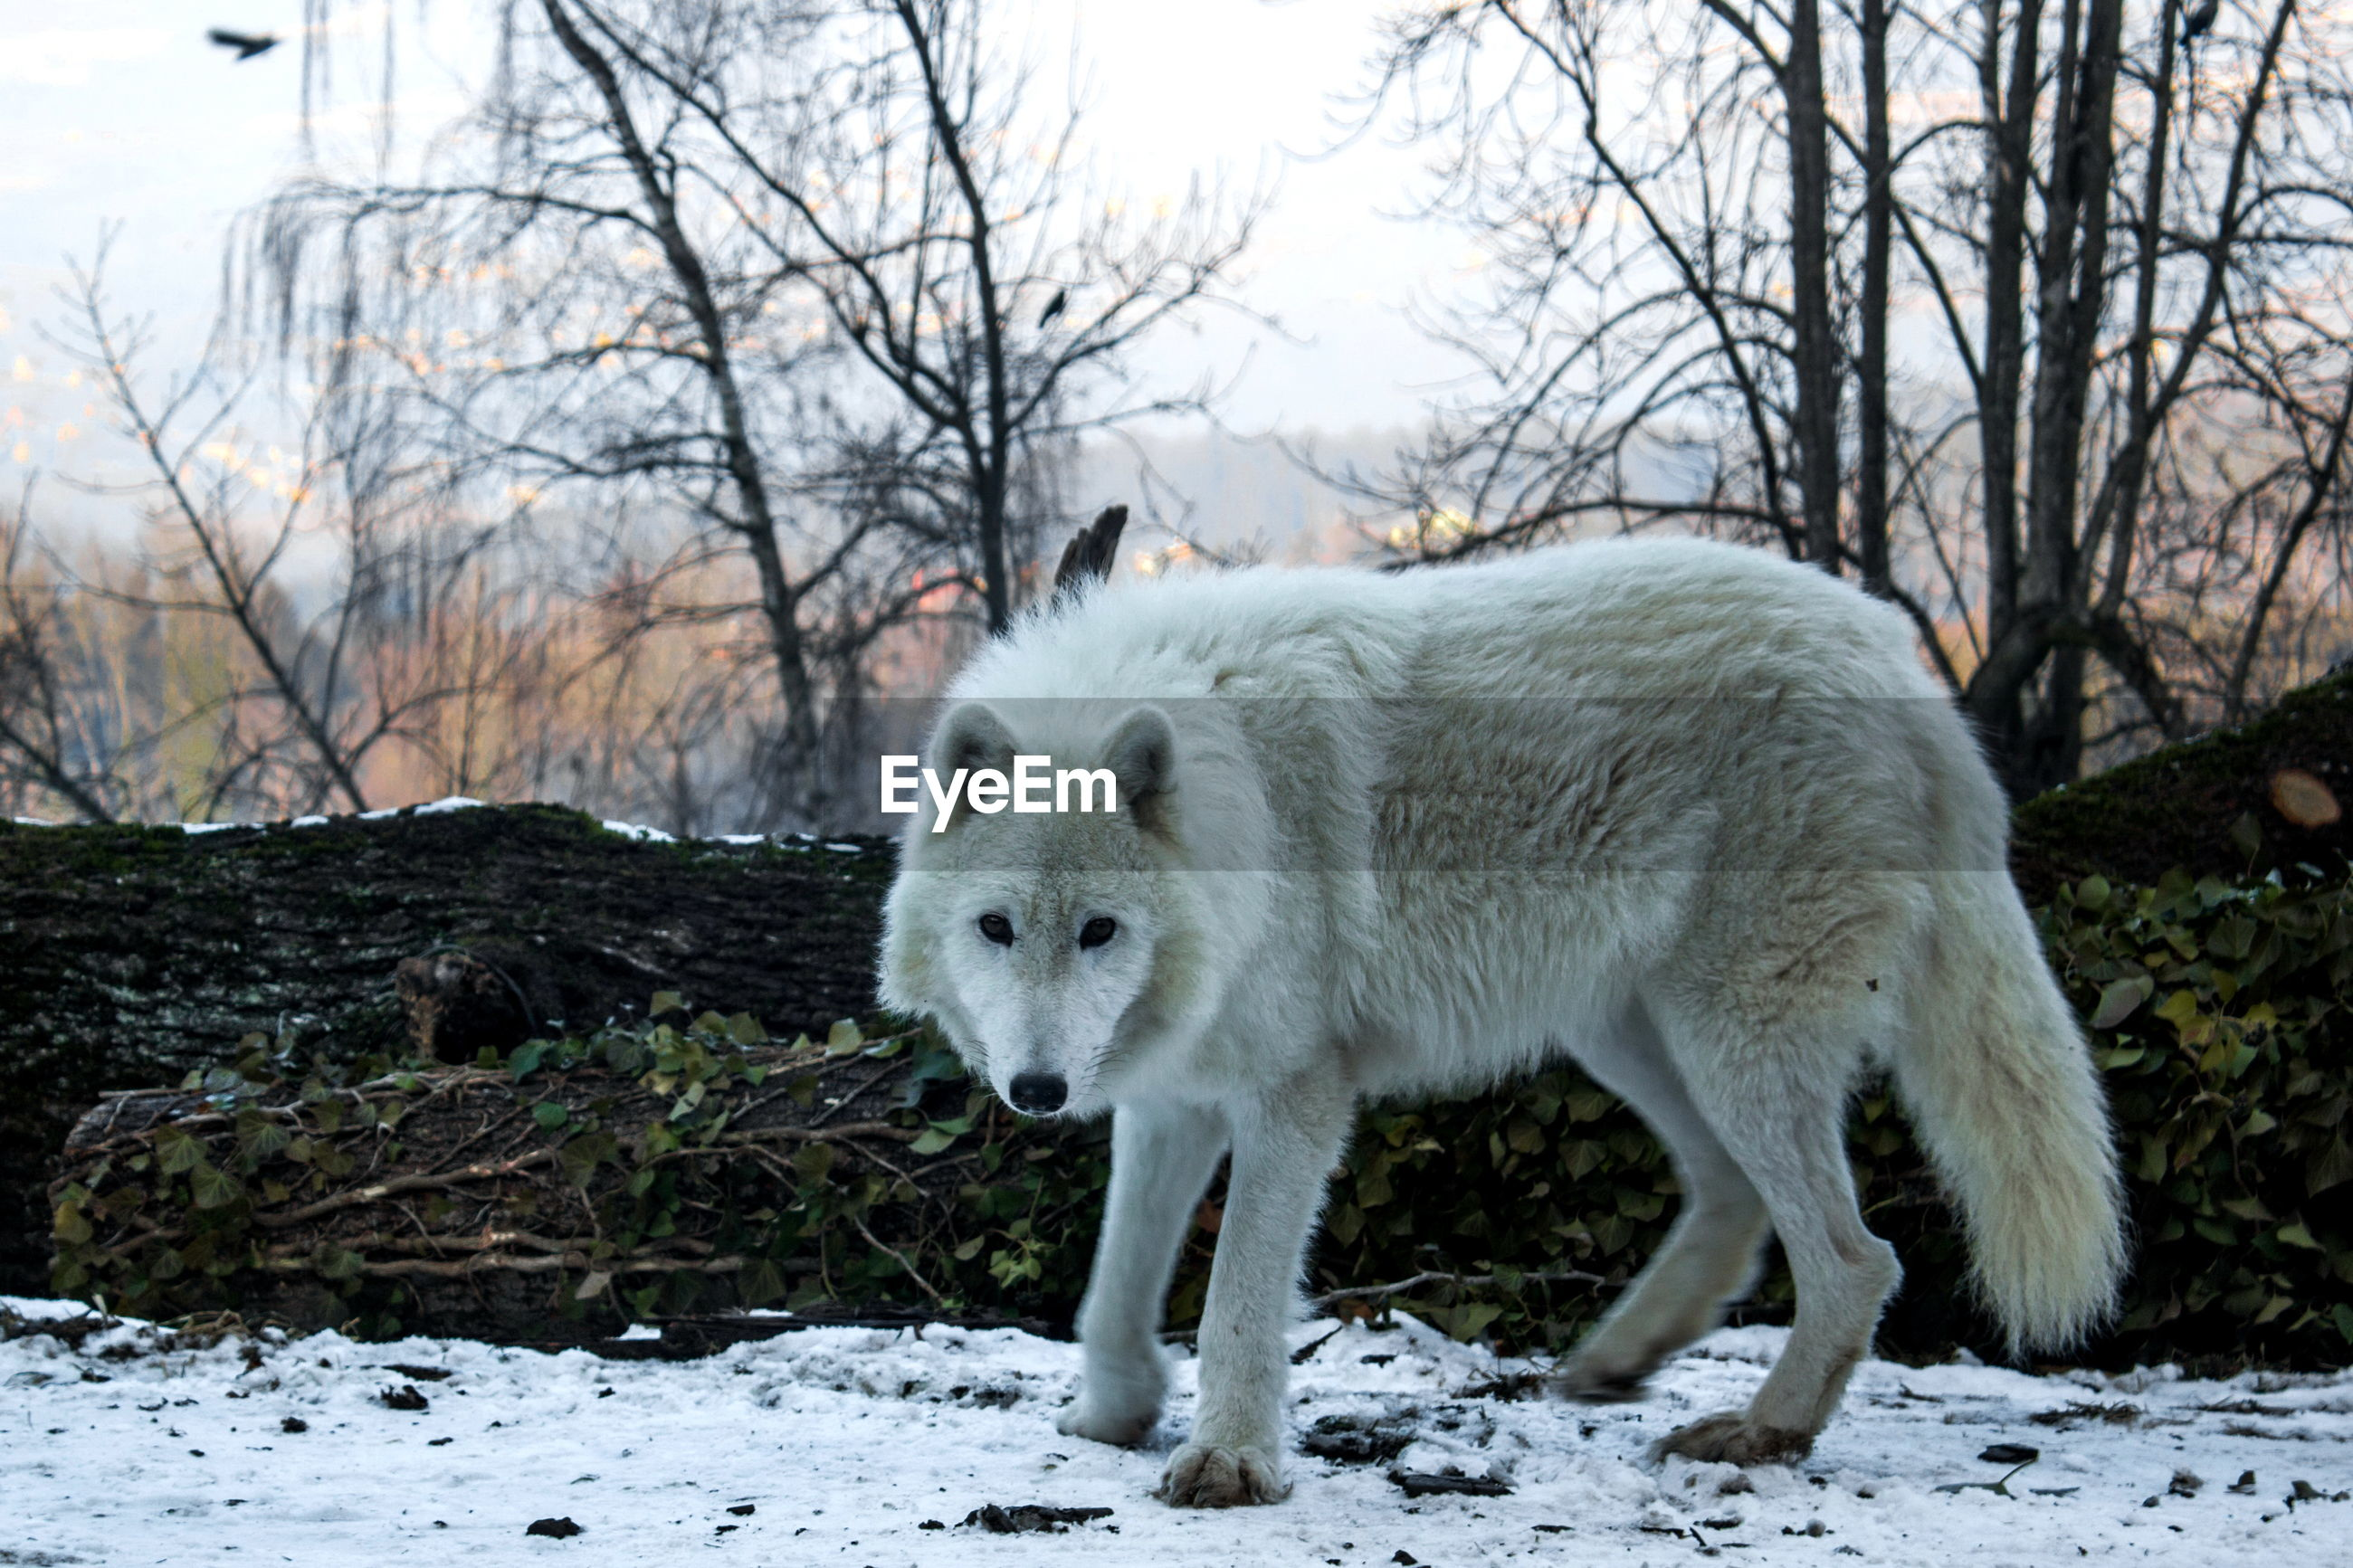 one animal, animal themes, white color, winter, mammal, cold temperature, snow, field, animals in the wild, animal wildlife, nature, outdoors, no people, bare tree, day, standing, domestic animals, tree, beauty in nature, close-up, sky